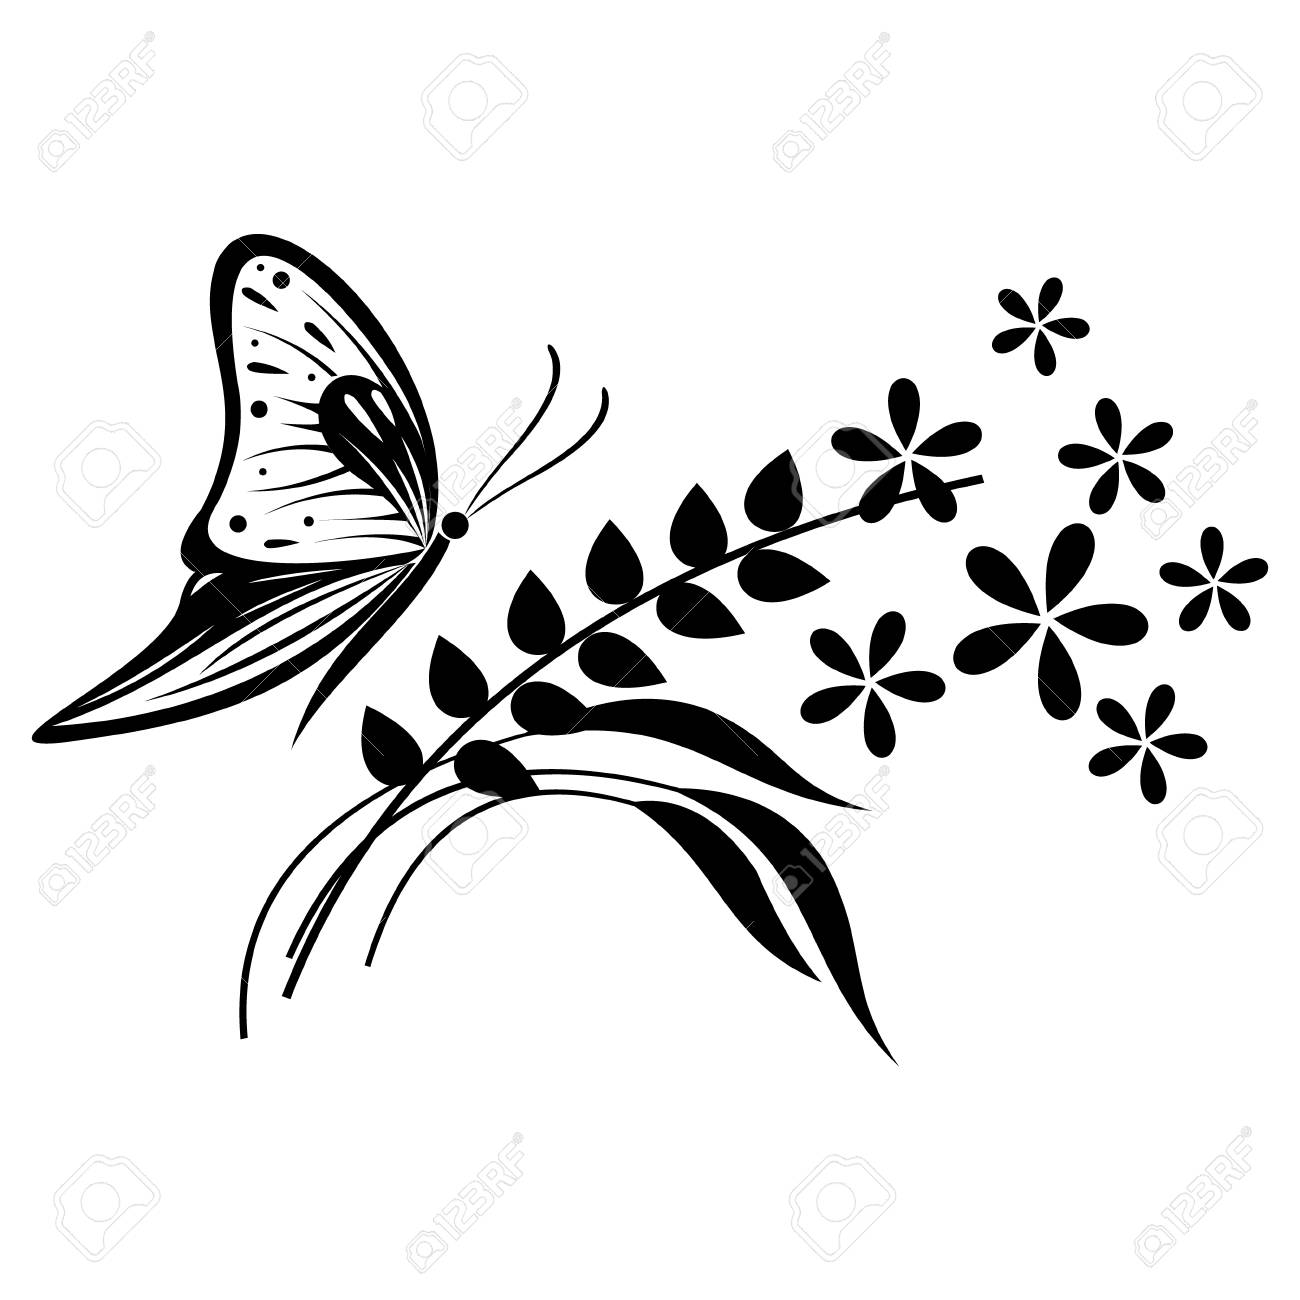 hight resolution of vector vector illustration of insect black and white butterfly flowers and branches with leaves isolated on the white background